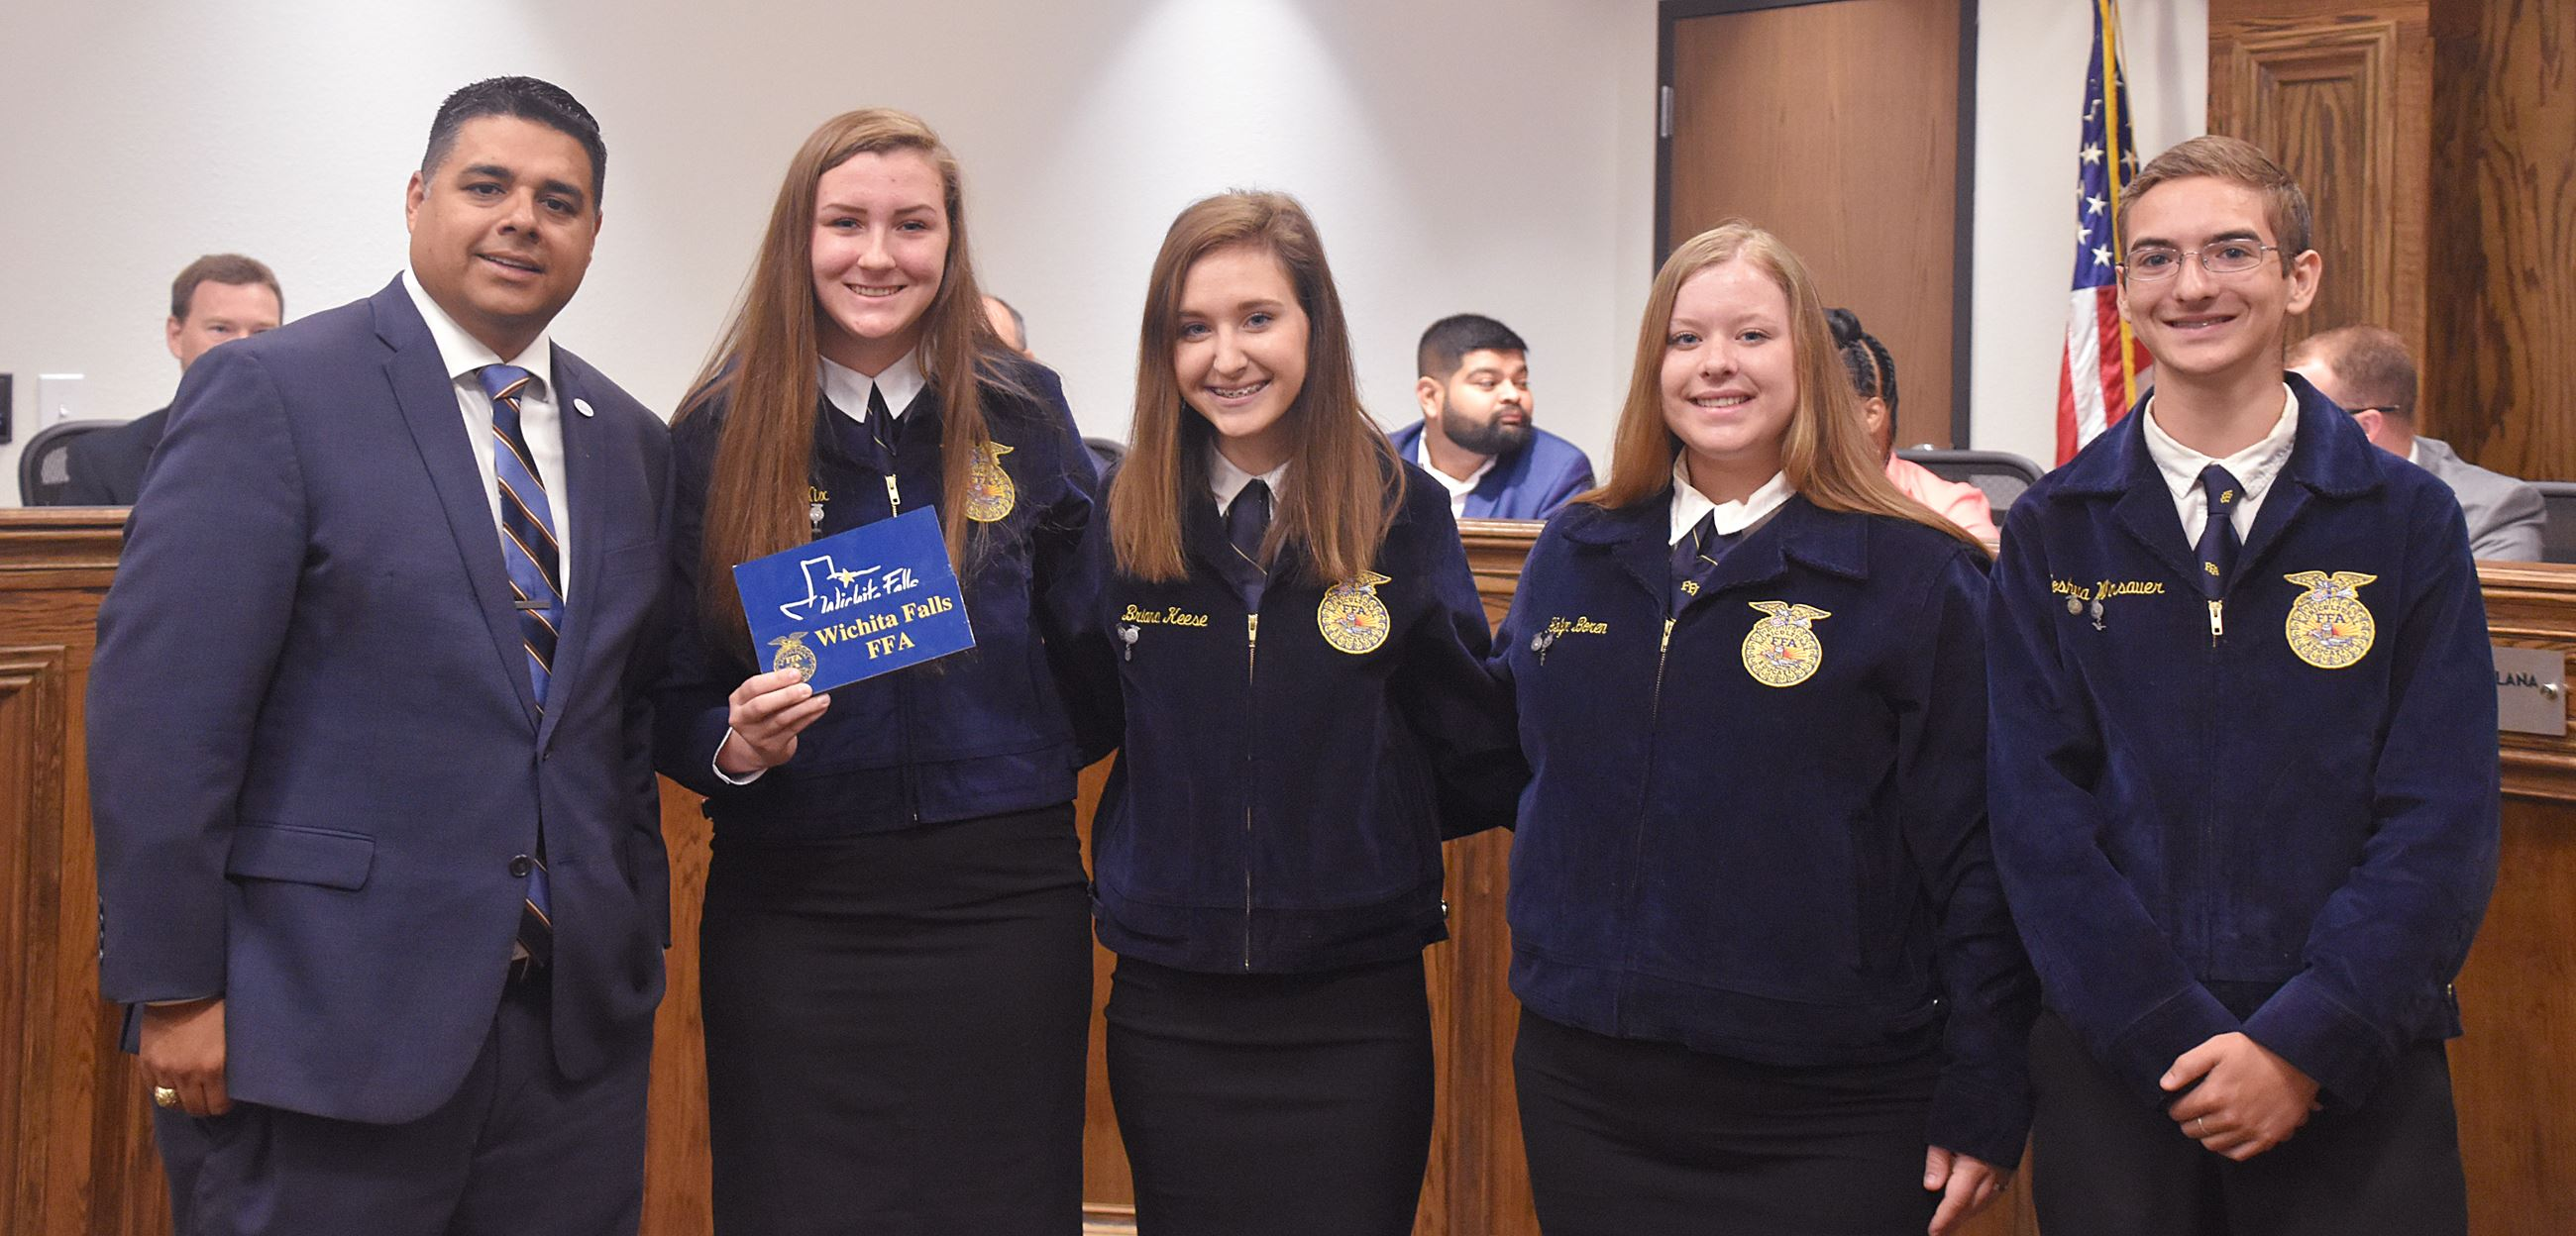 Daniel FFA Council Meeting